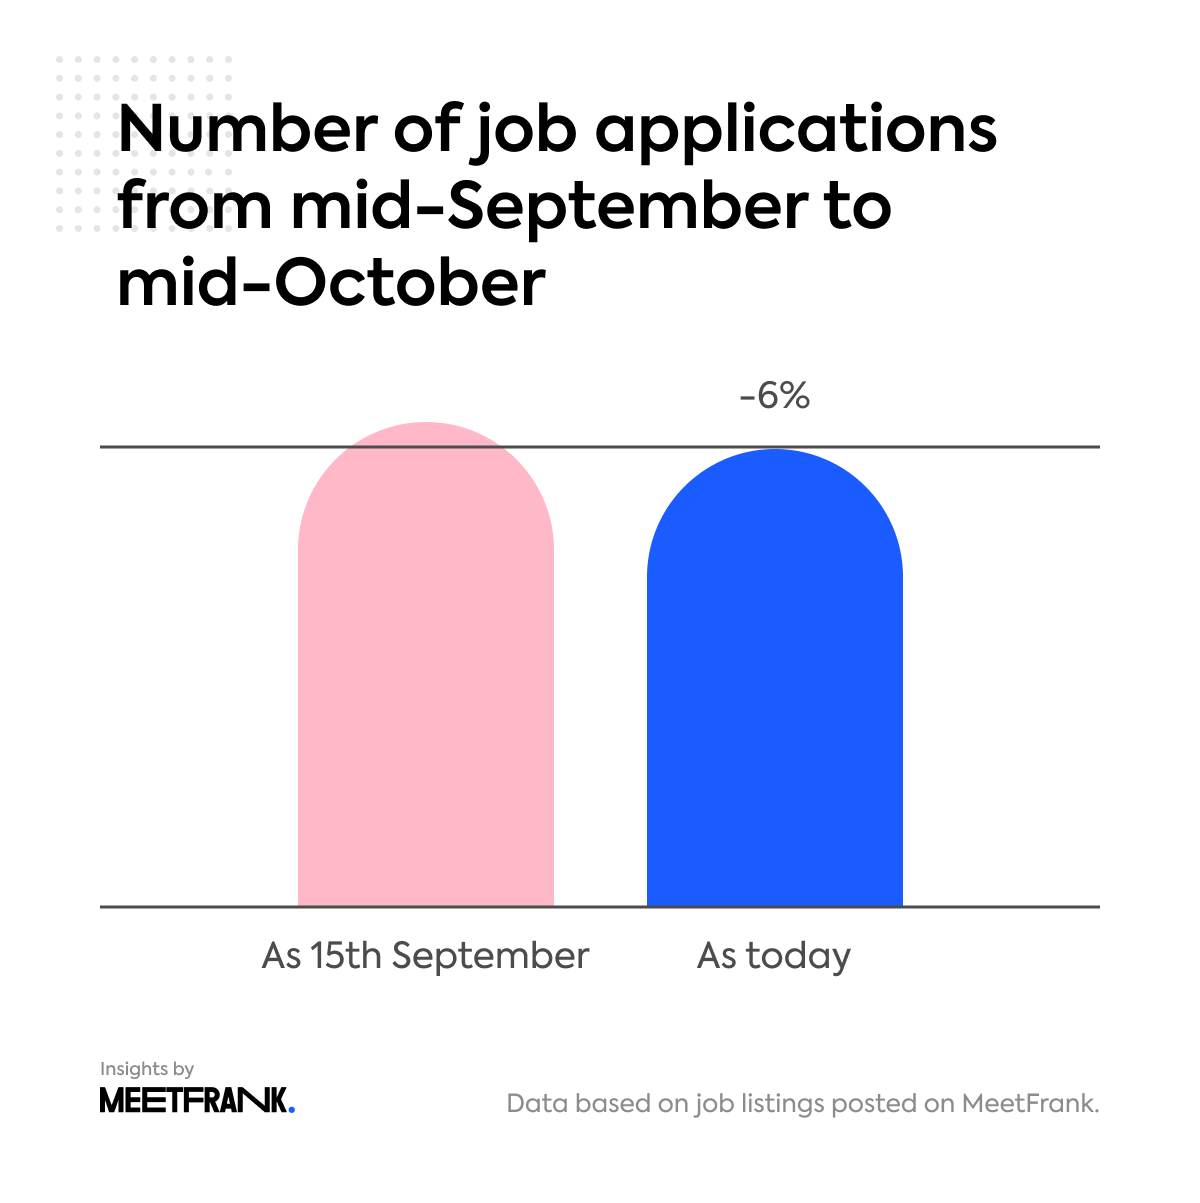 number of job applications in Finland